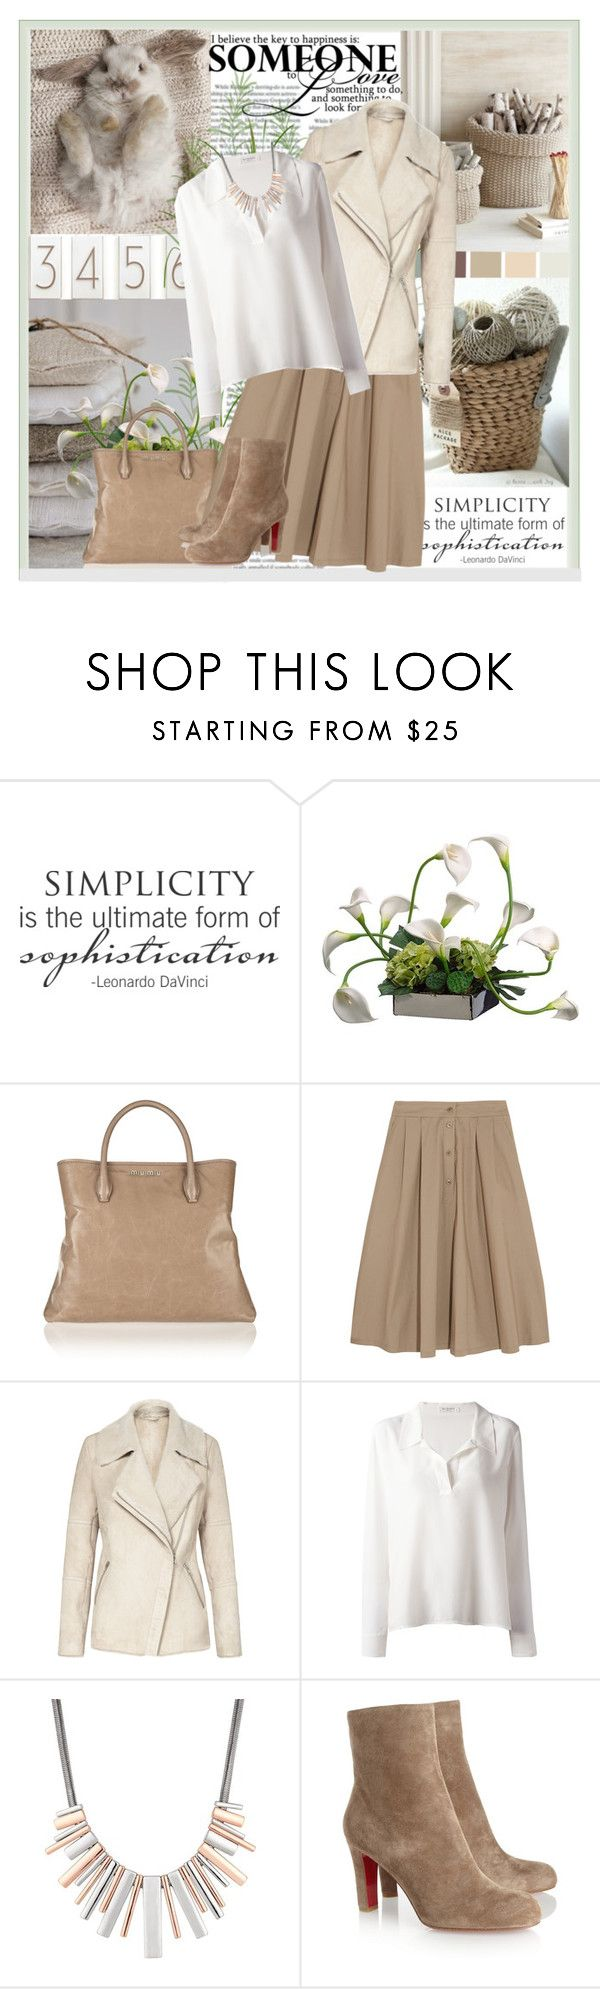 """""""Simplicity"""" by easystyle ❤ liked on Polyvore featuring WALL, Miu Miu, Paul & Joe, Reiss, Equipment, J by Jasper Conran, Christian Louboutin, Leather, Boots and Sweater"""